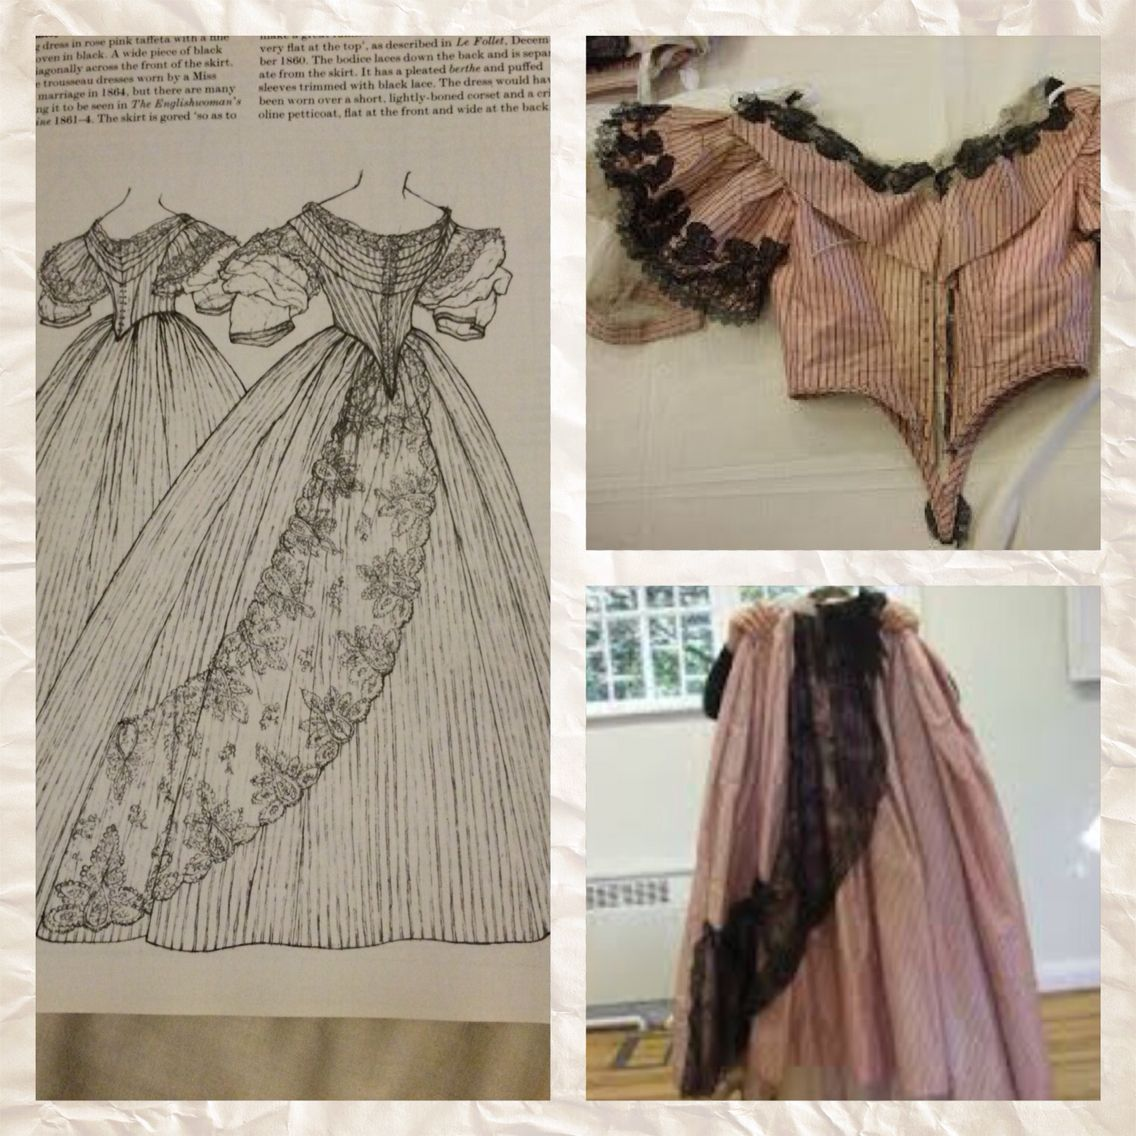 1861-4 Evening dress in rose pink taffeta with fine double stripes woven in black. A wide piece of black lace is draped diagonally across the front of the skirt. Gallery of English costume. Patterns of Fashion 2 page 22